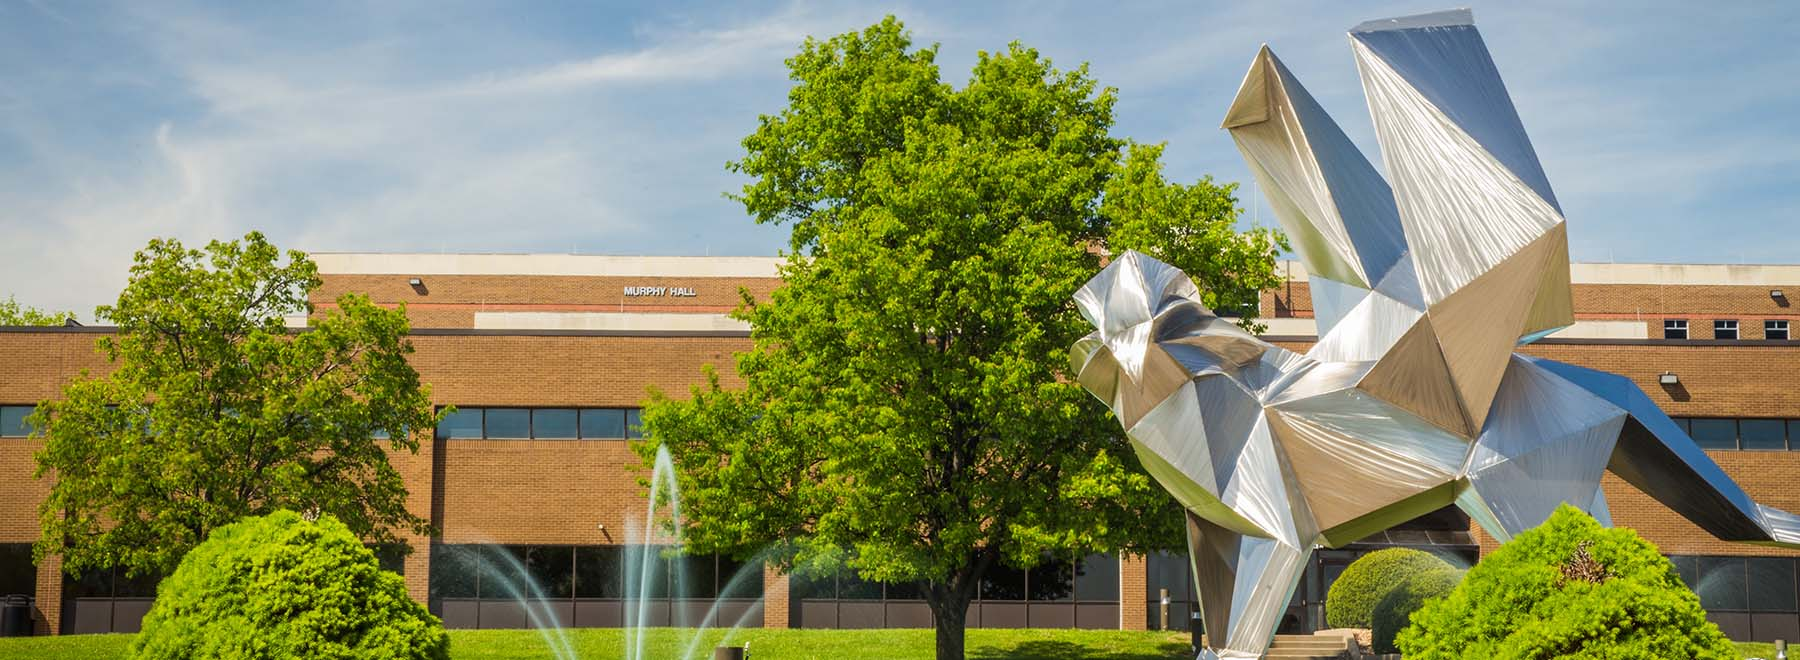 Griffon statue in front of Eder Hall